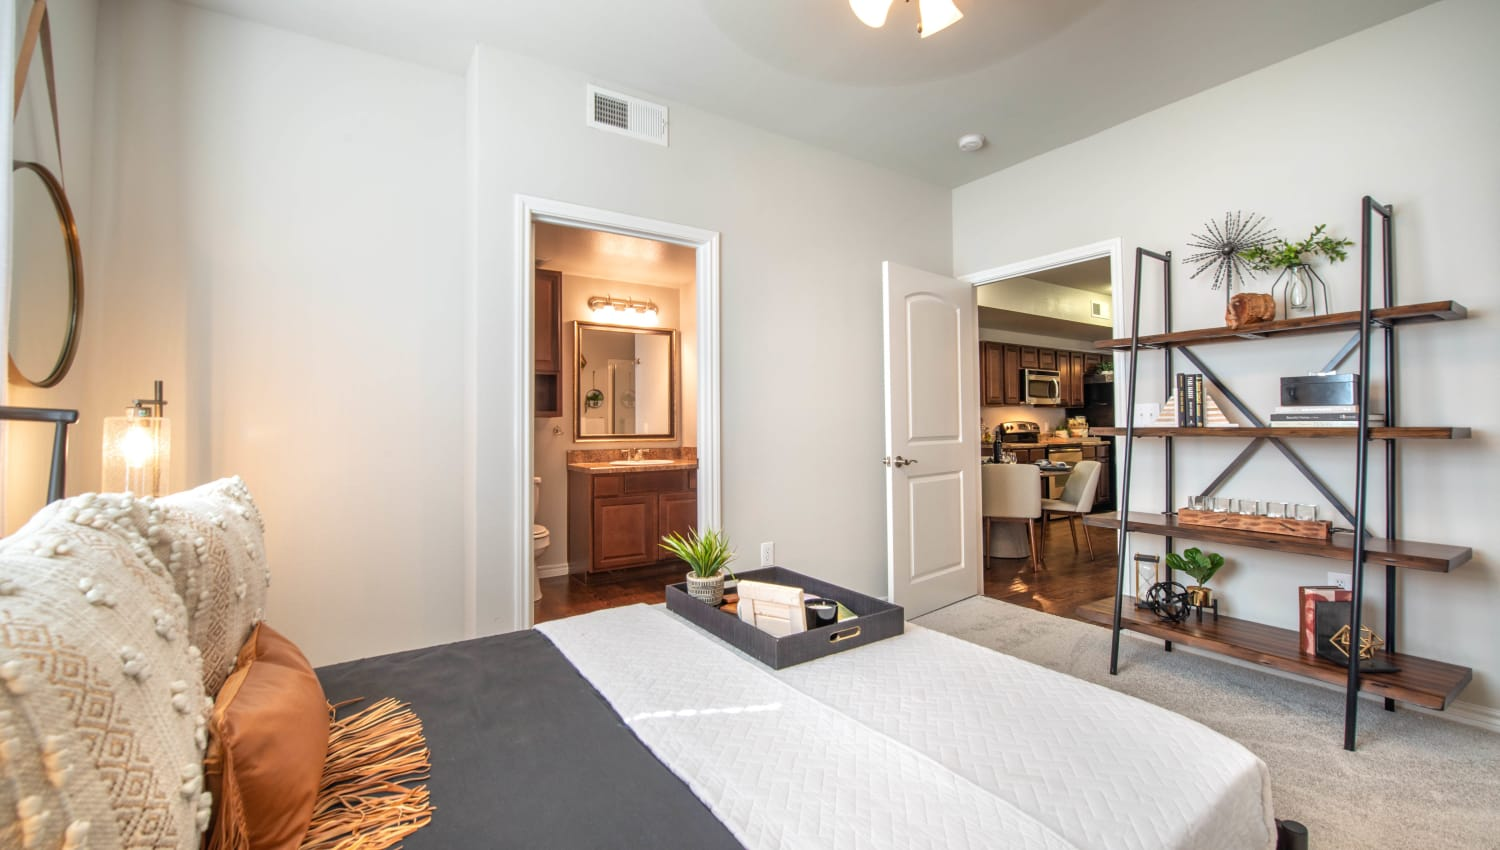 Well-arranged master bedroom with an en suite bathroom in a model home at Olympus Willow Park in Willow Park, Texas